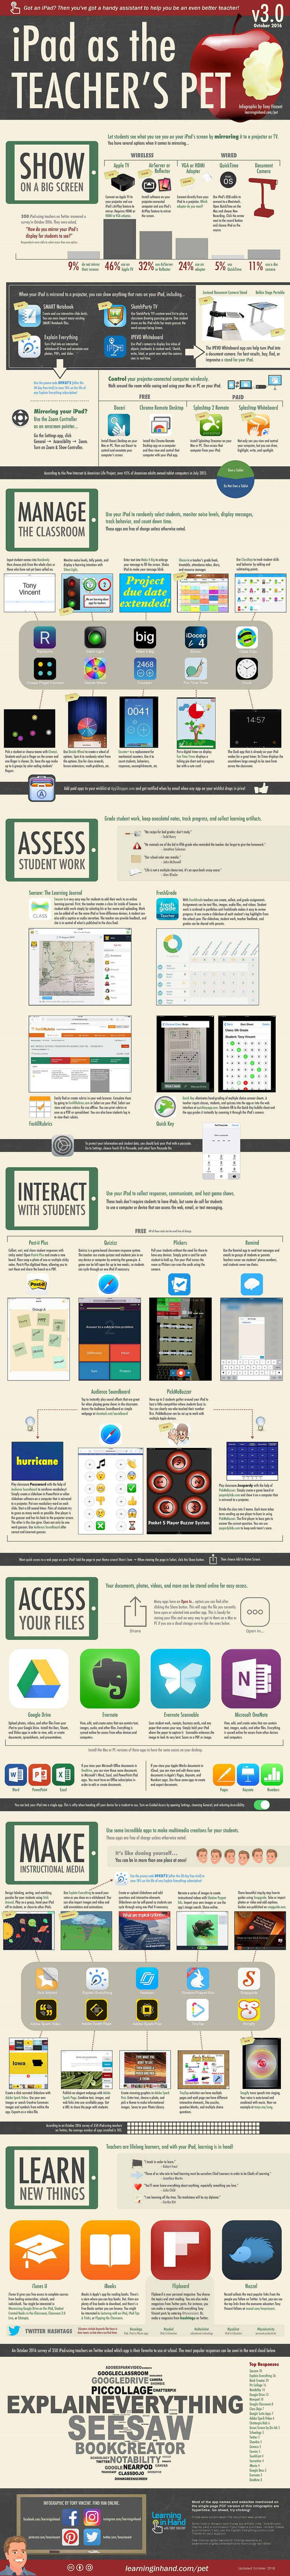 iPad as the Teacher's Pet in 2016 Infographic - http://elearninginfographics.com/ipad-as-the-teachers-pet-in-2016-infographic/